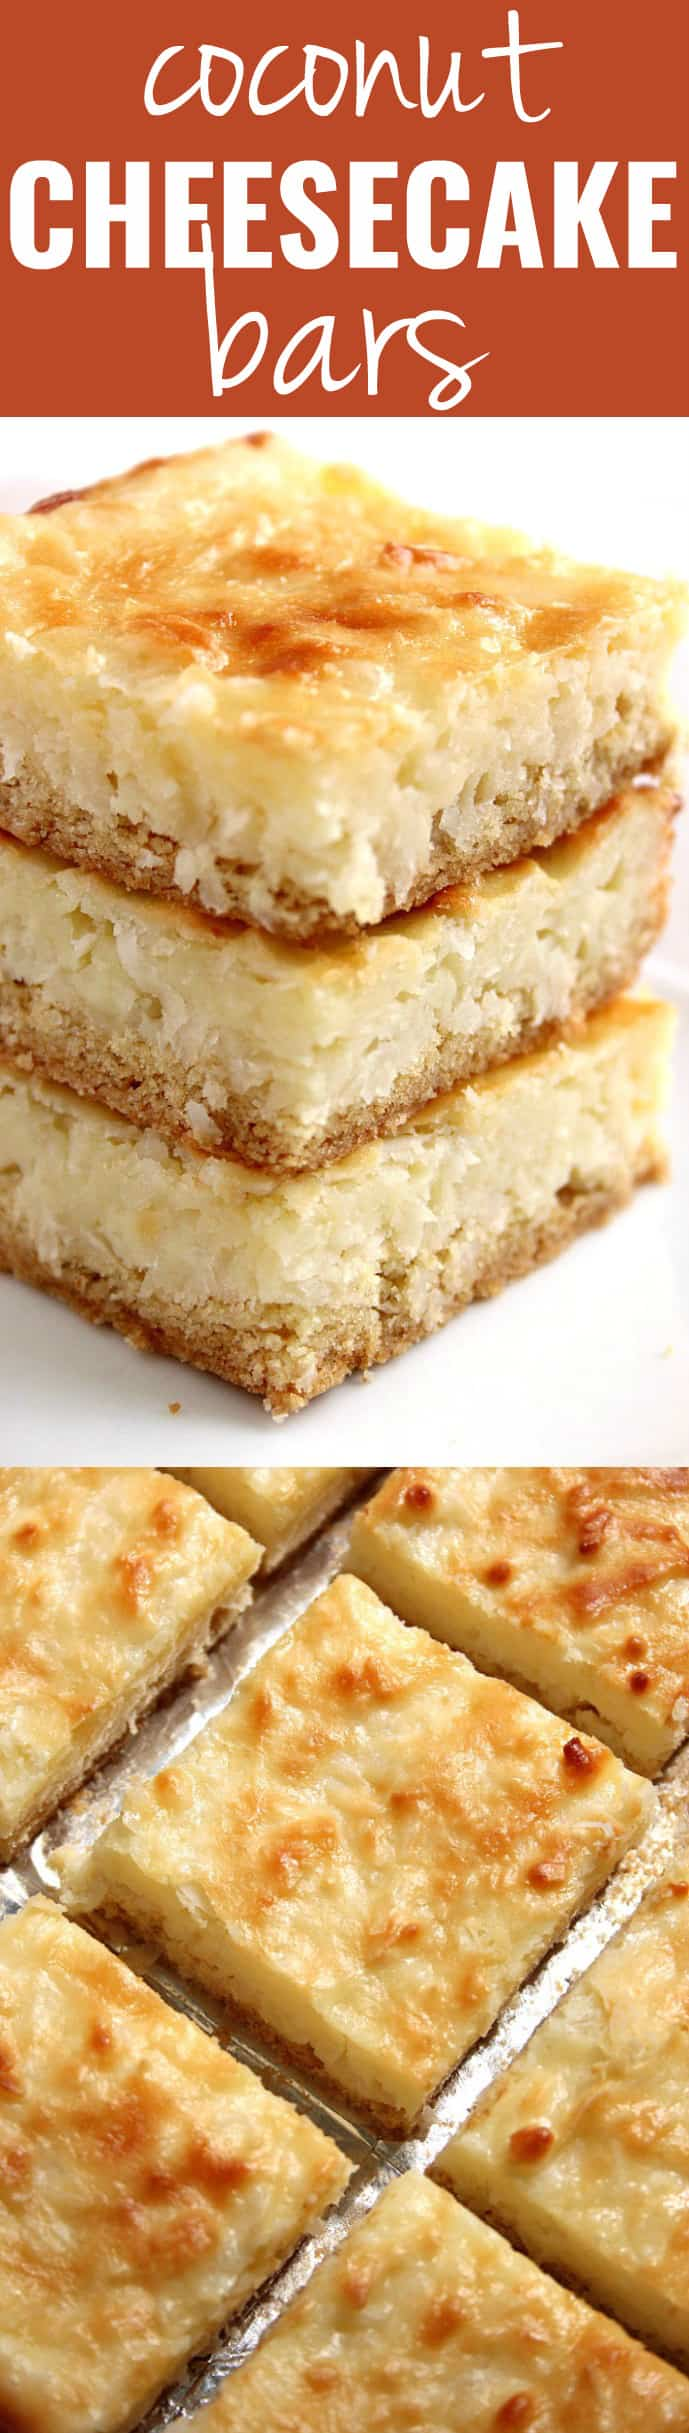 coconut cheesecake bars A Coconut Cheesecake Bars Recipe